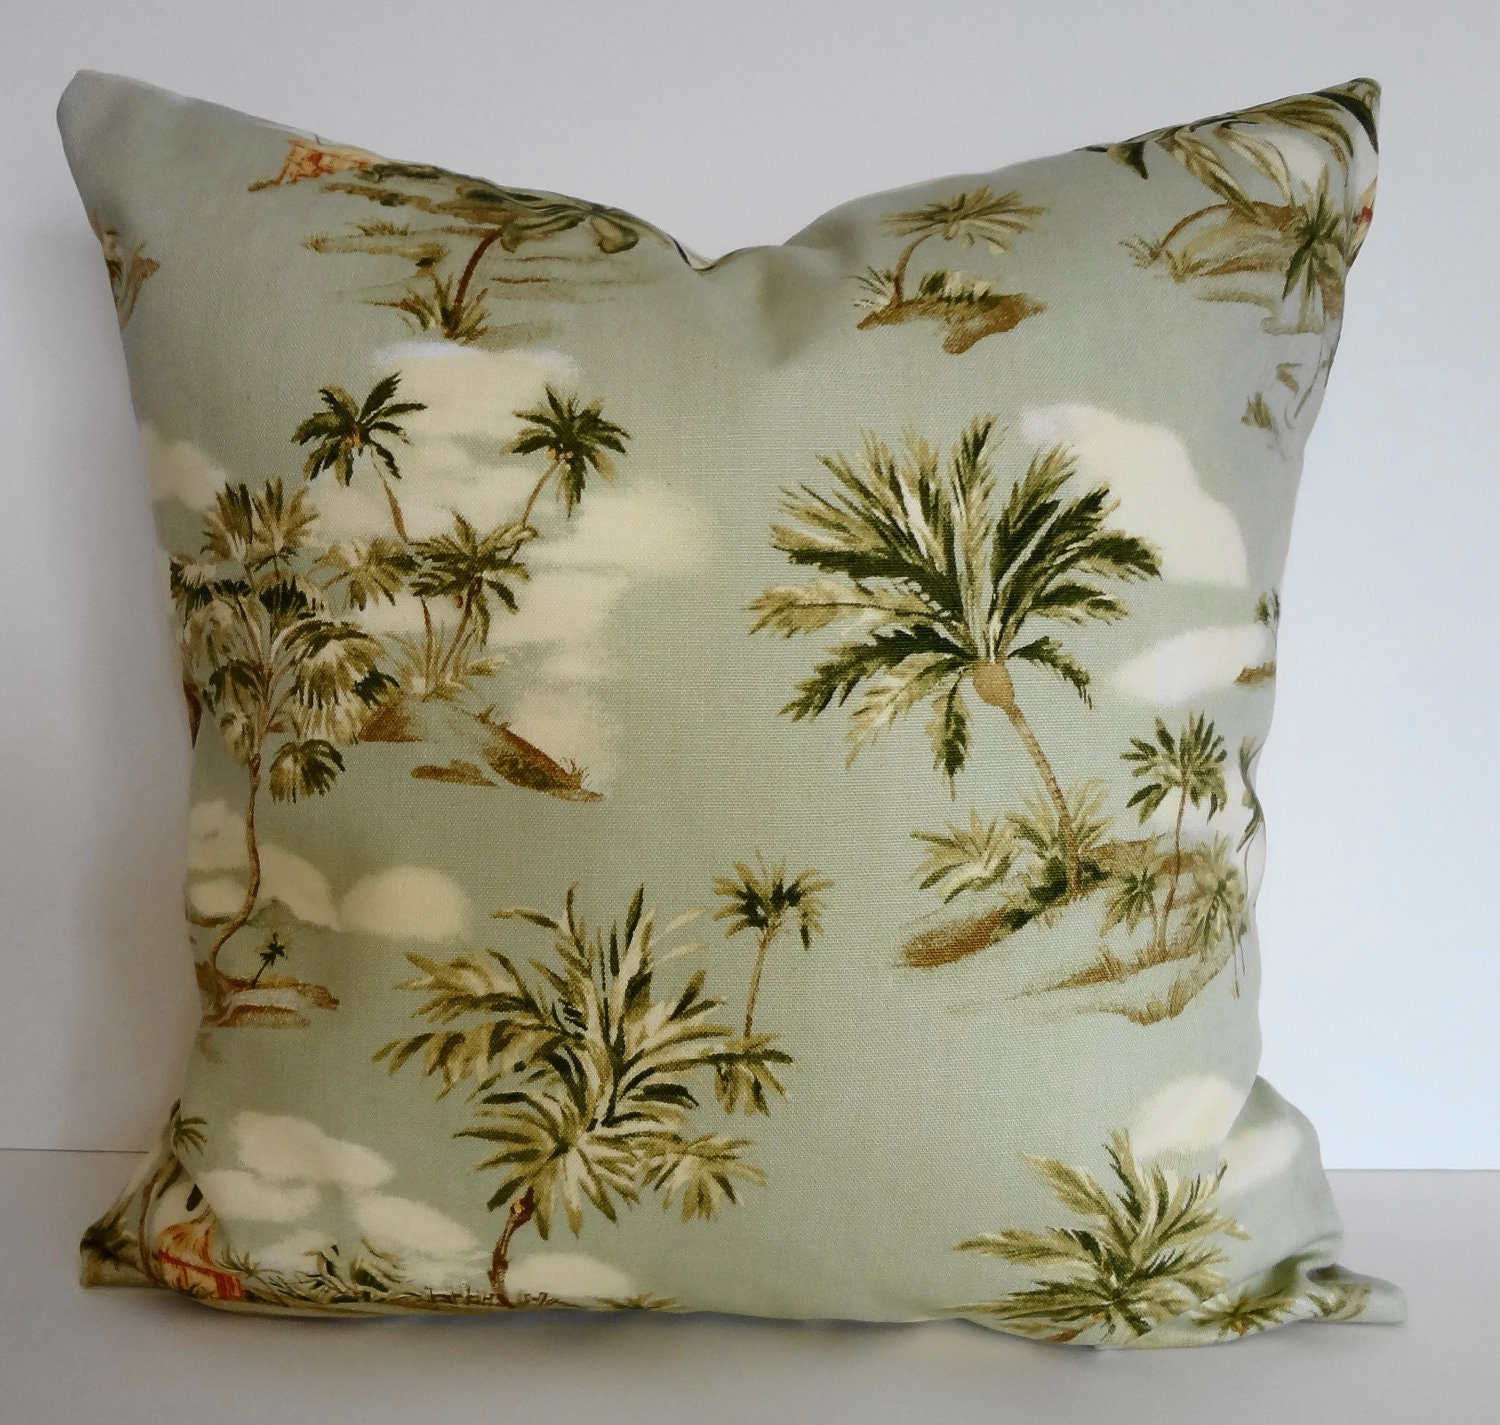 Tropical Throw Pillows For Couch : Tropical Throw Pillow Cover Hawaiian Print Ametex Designs